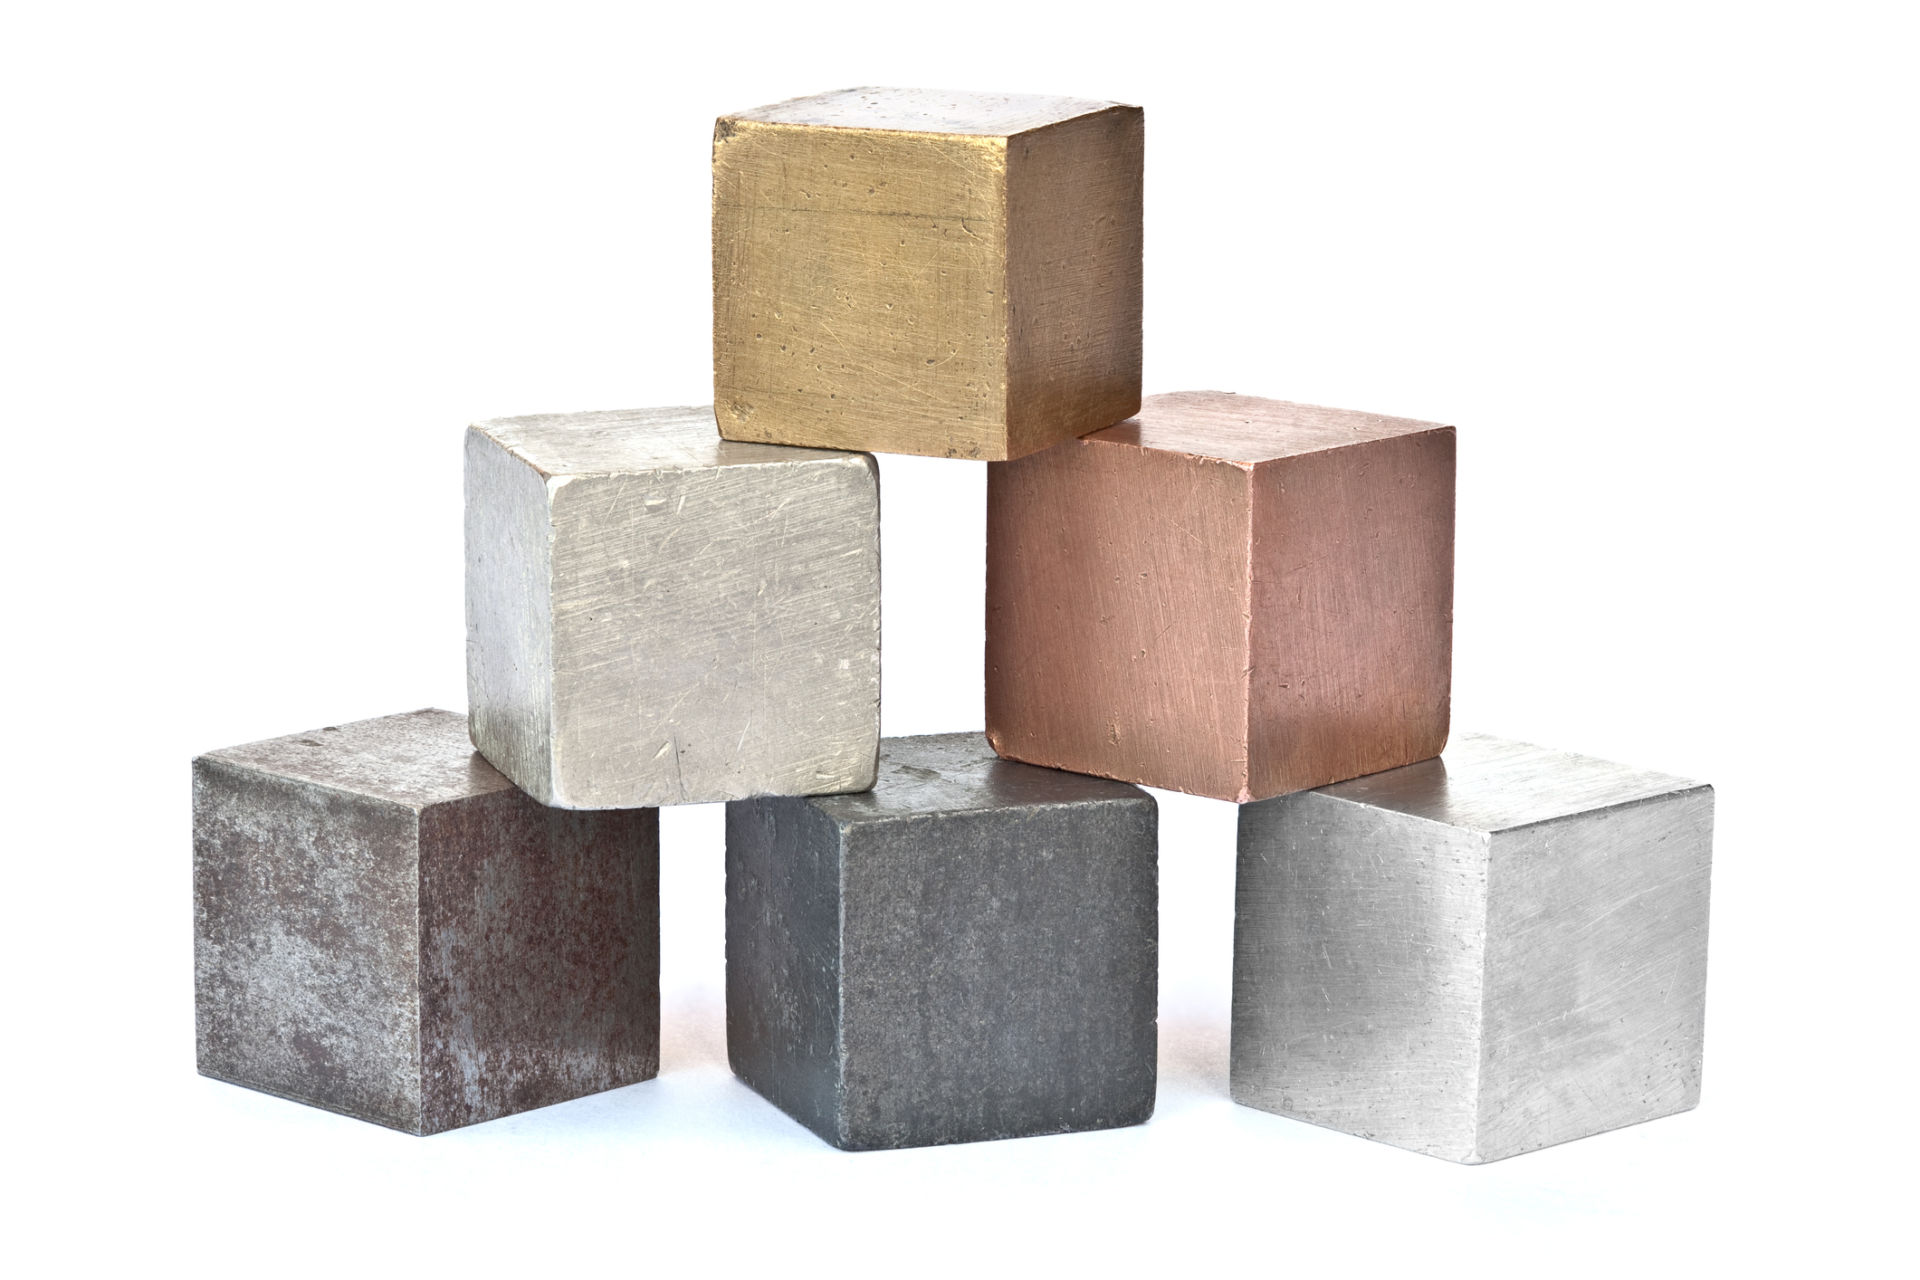 cubed and shot metal alloys